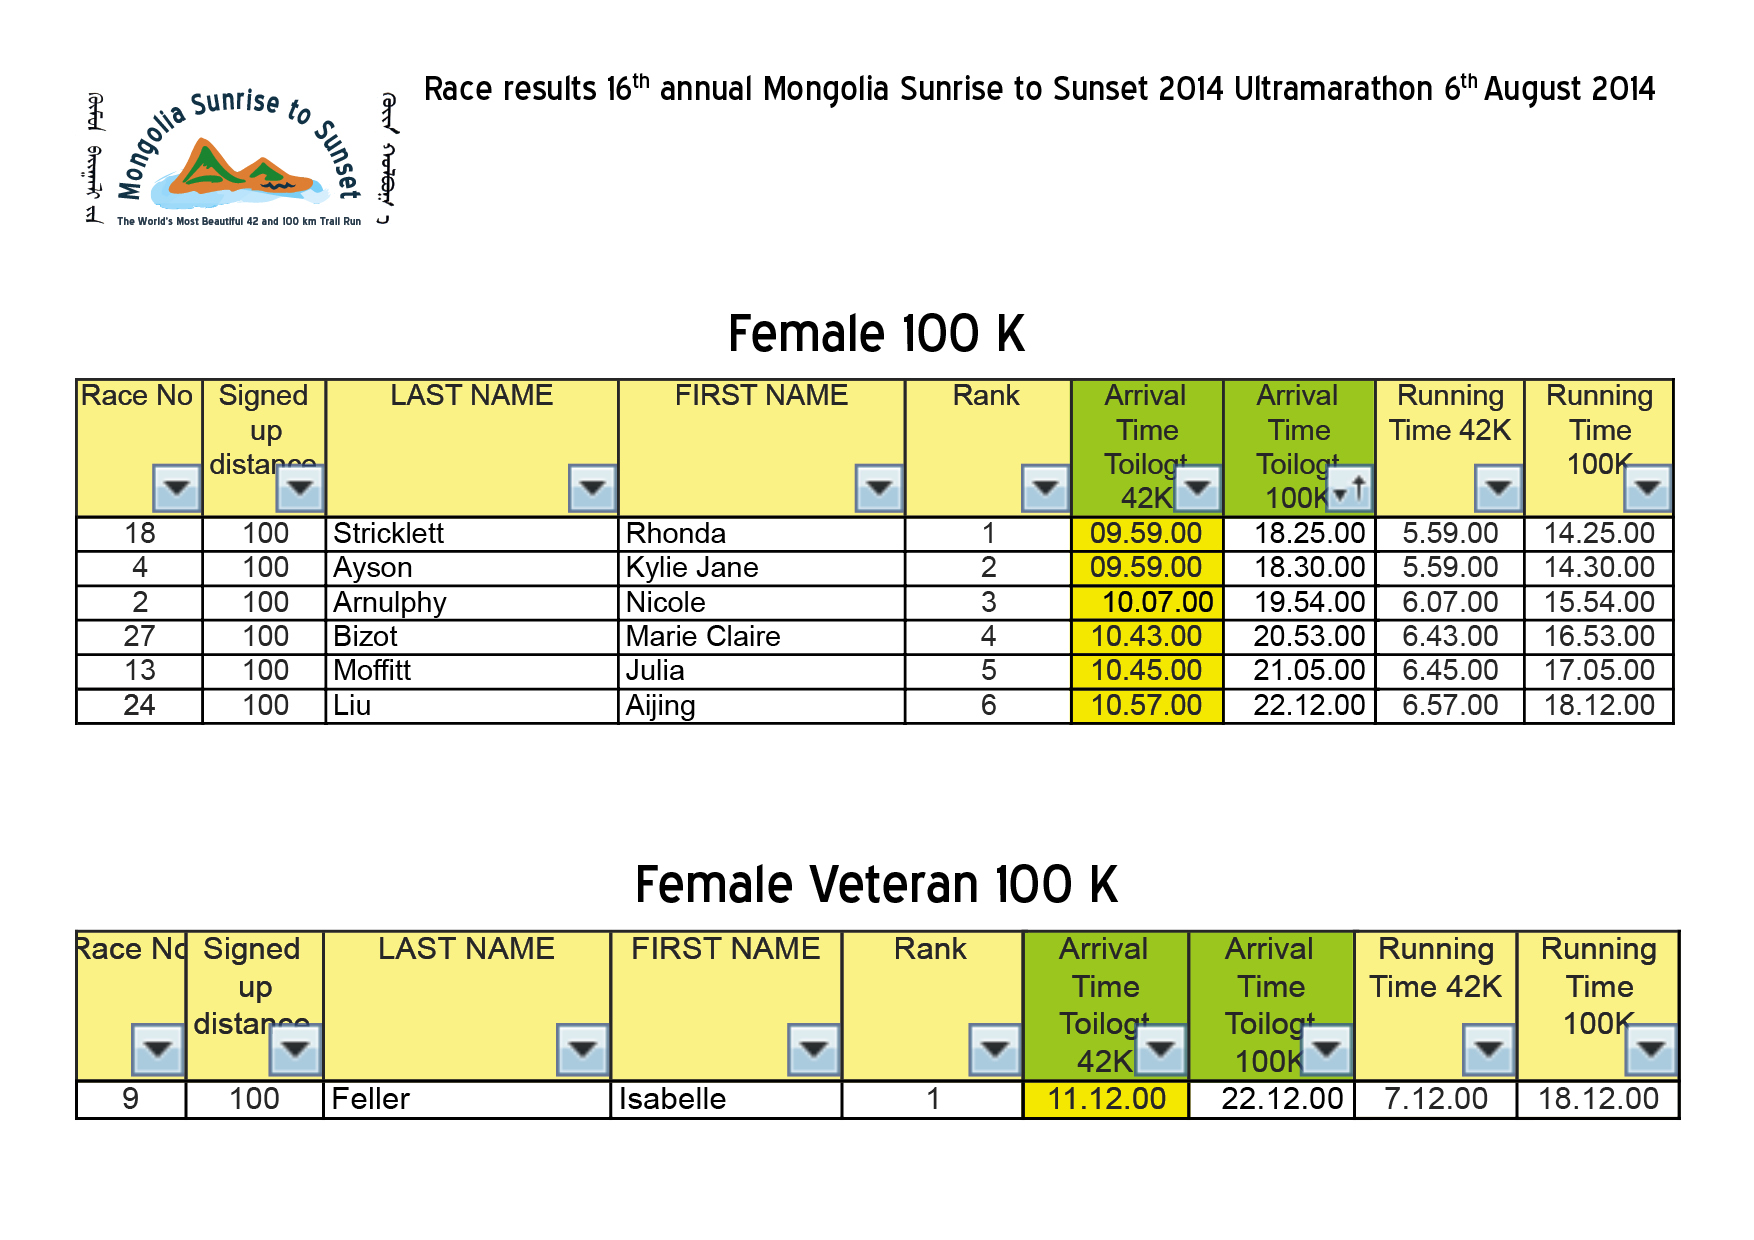 Race results 16th annual Mongolia Sunrise to Sunset 2014 Ultramarathon4